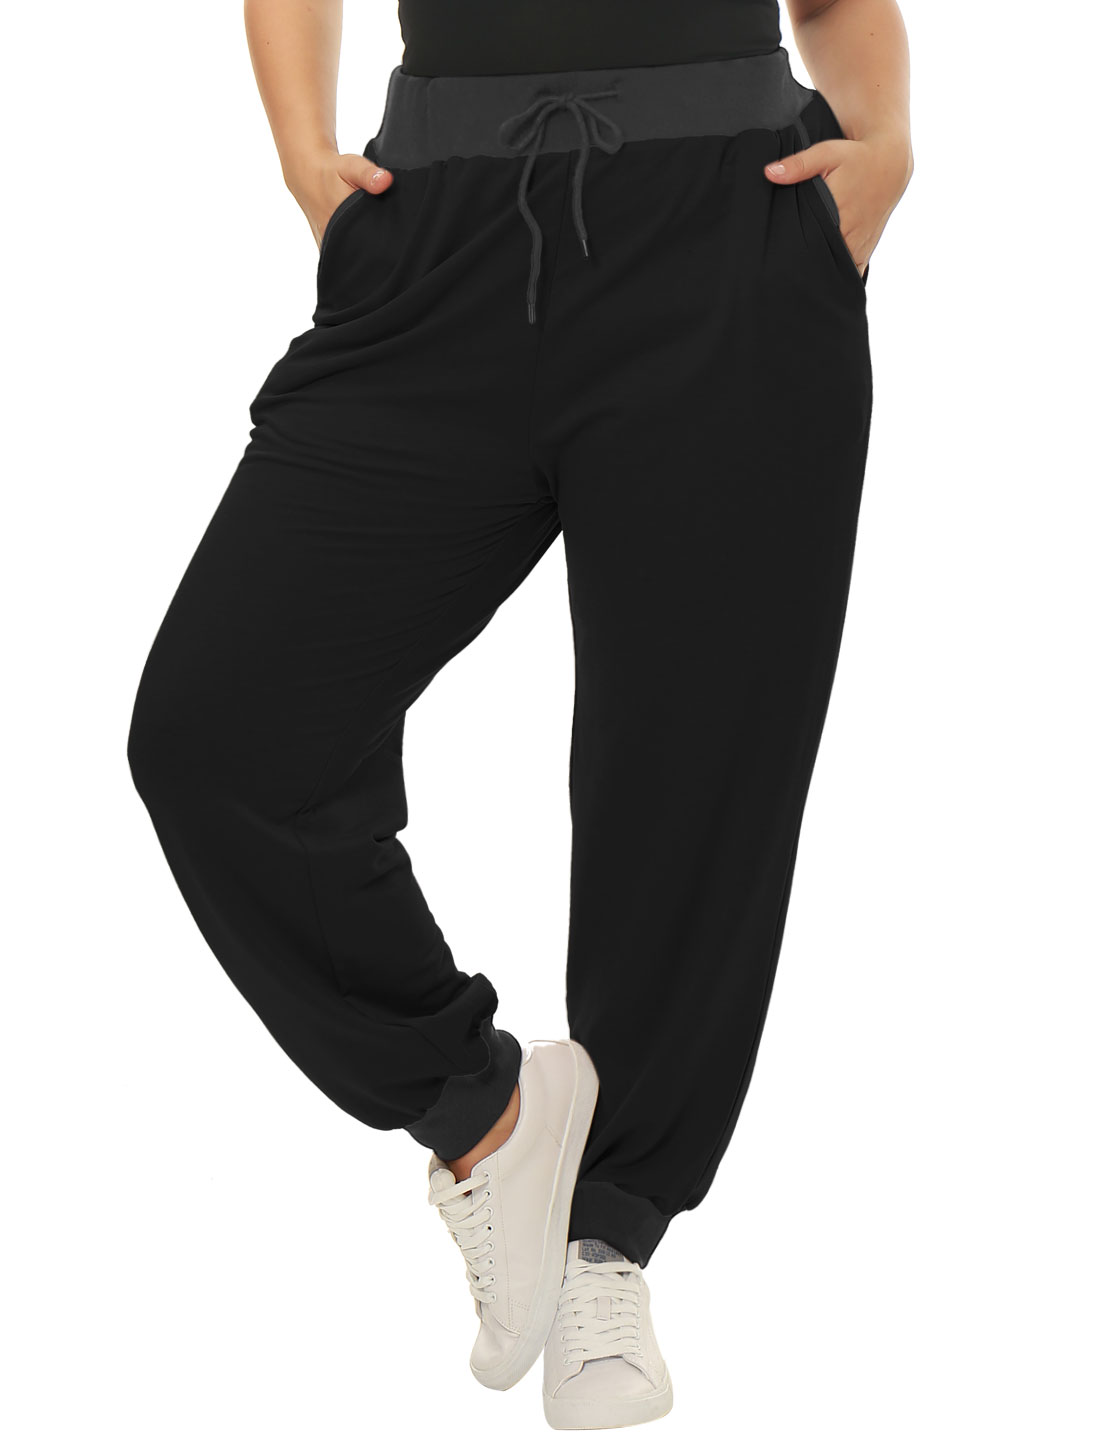 Women Plus Size Drawstring Waist Contrast Color Jogger Pants Black 1X